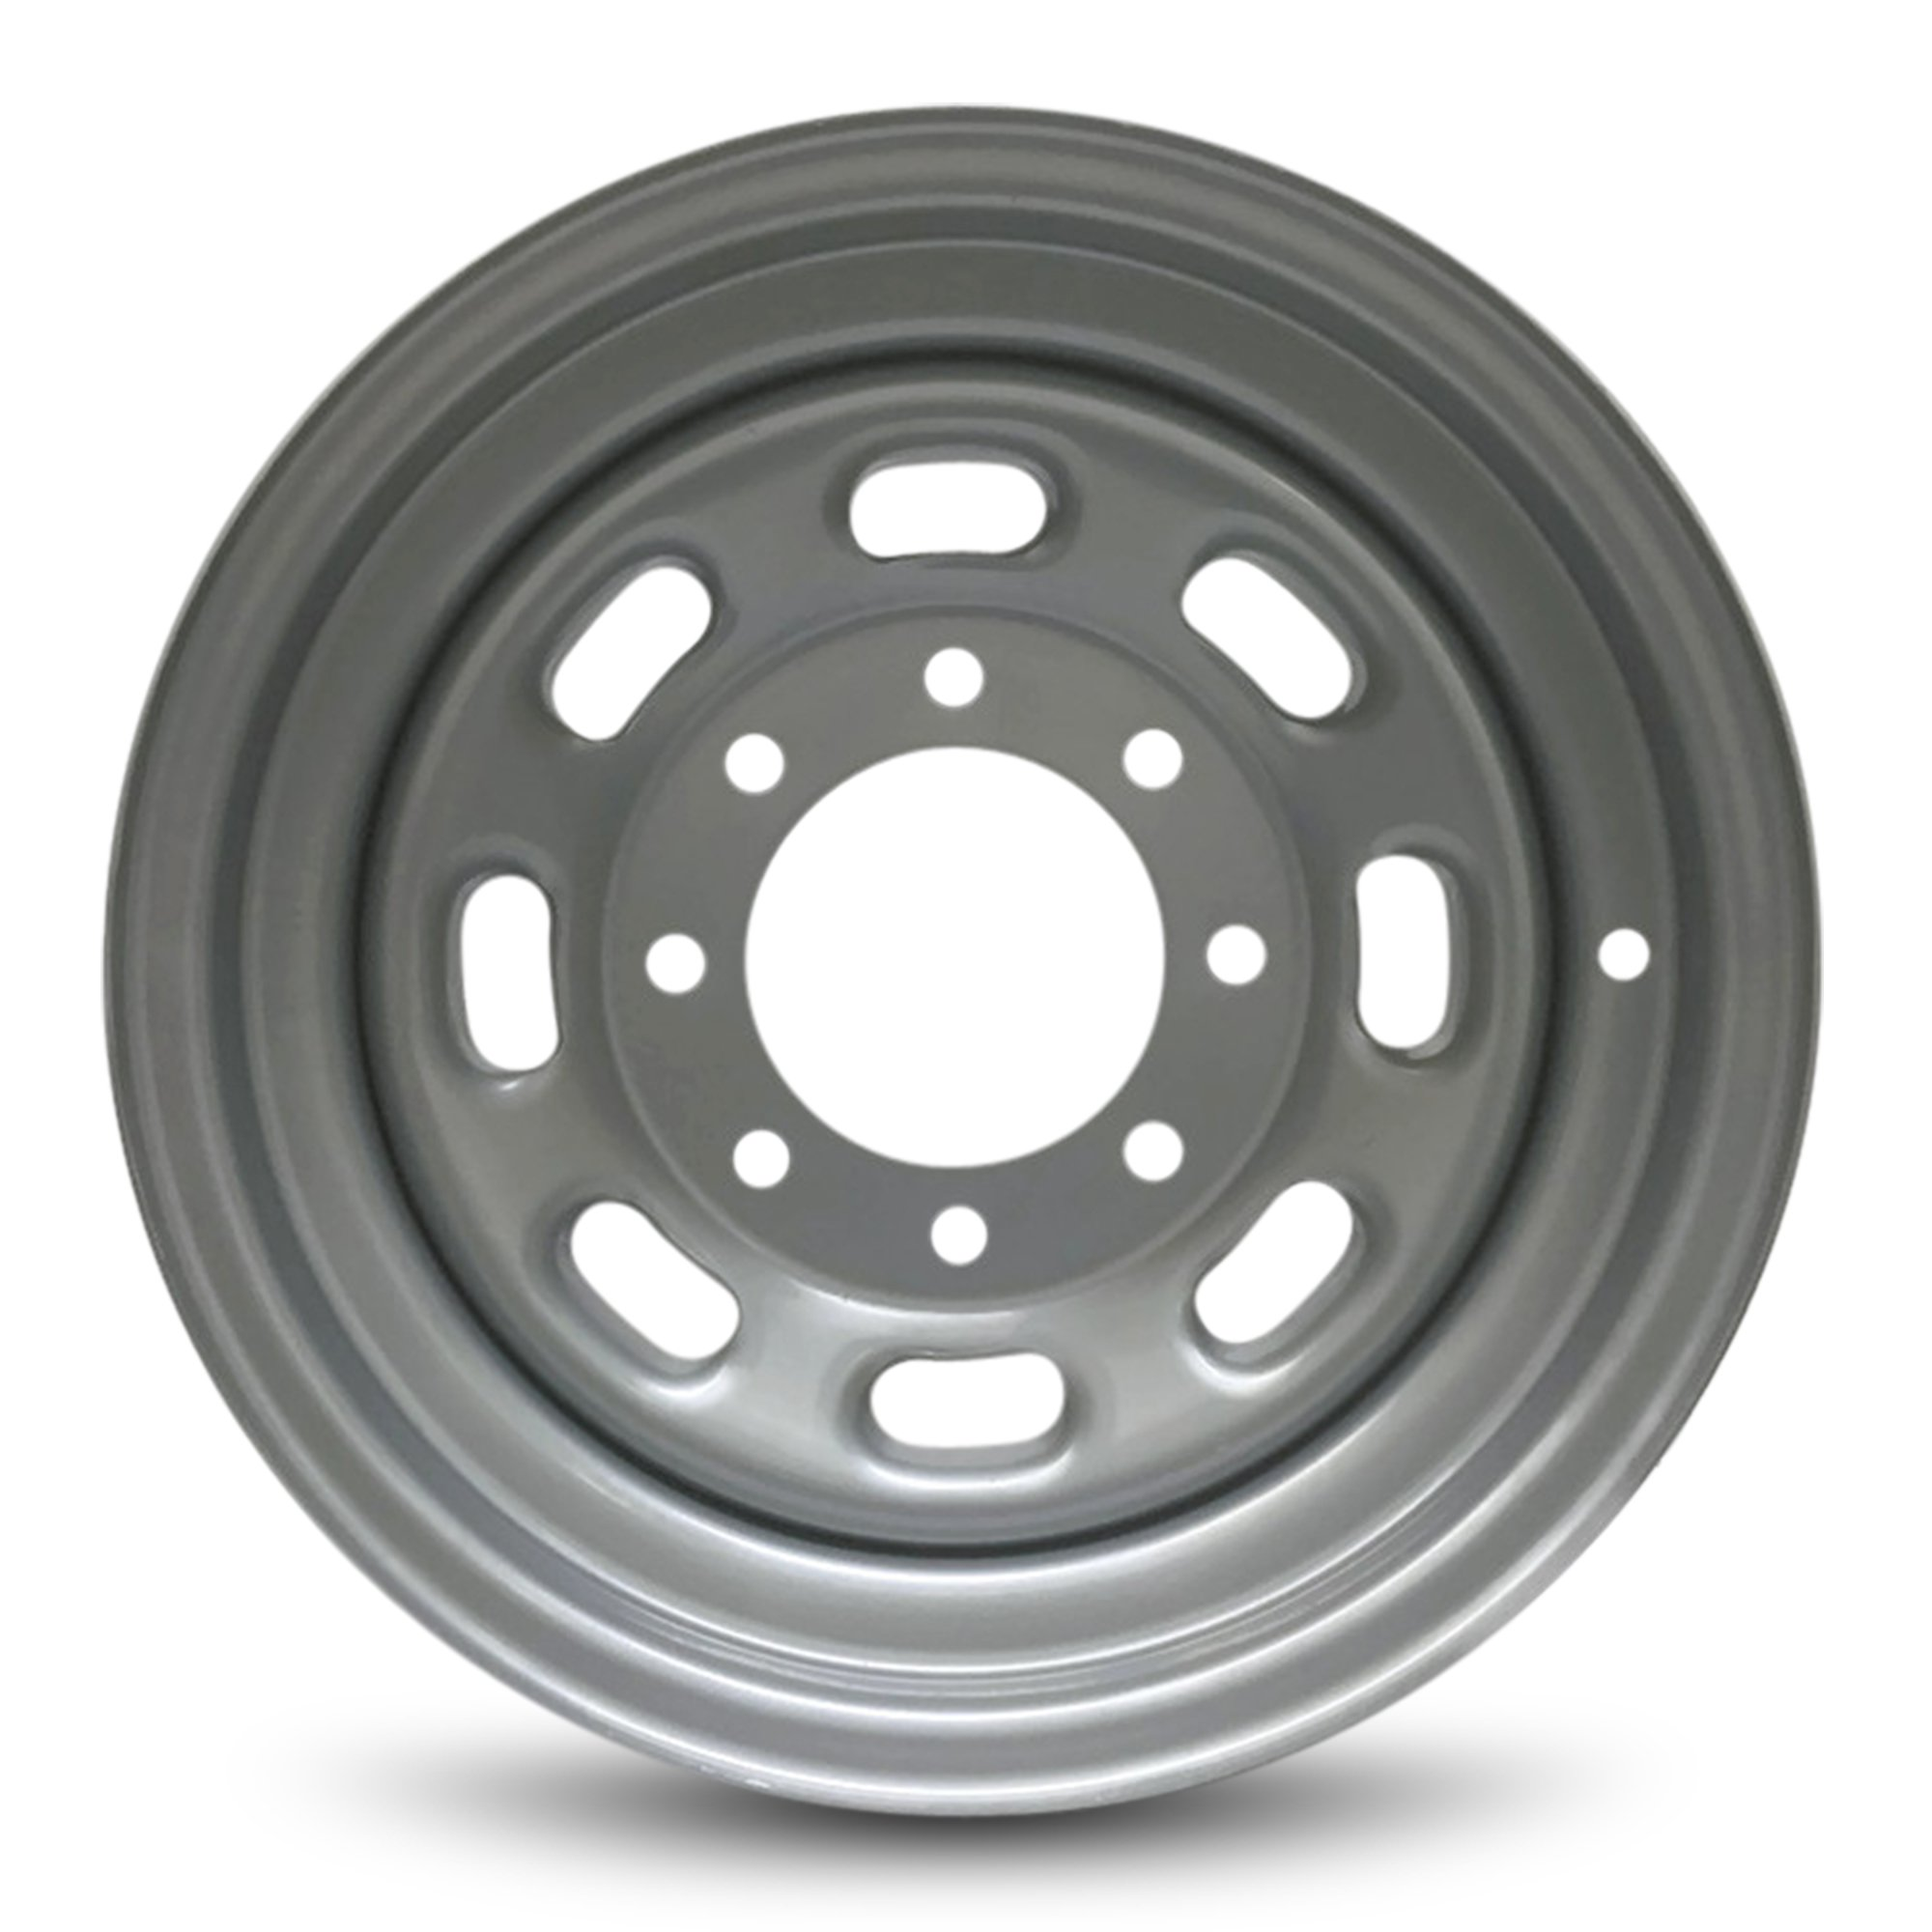 00-05 Ford Excursion 16'' 8 Lug Painted Steel Wheel/16x7 Steel Rim 8 Slot by Bill Smith Auto Parts (Image #1)